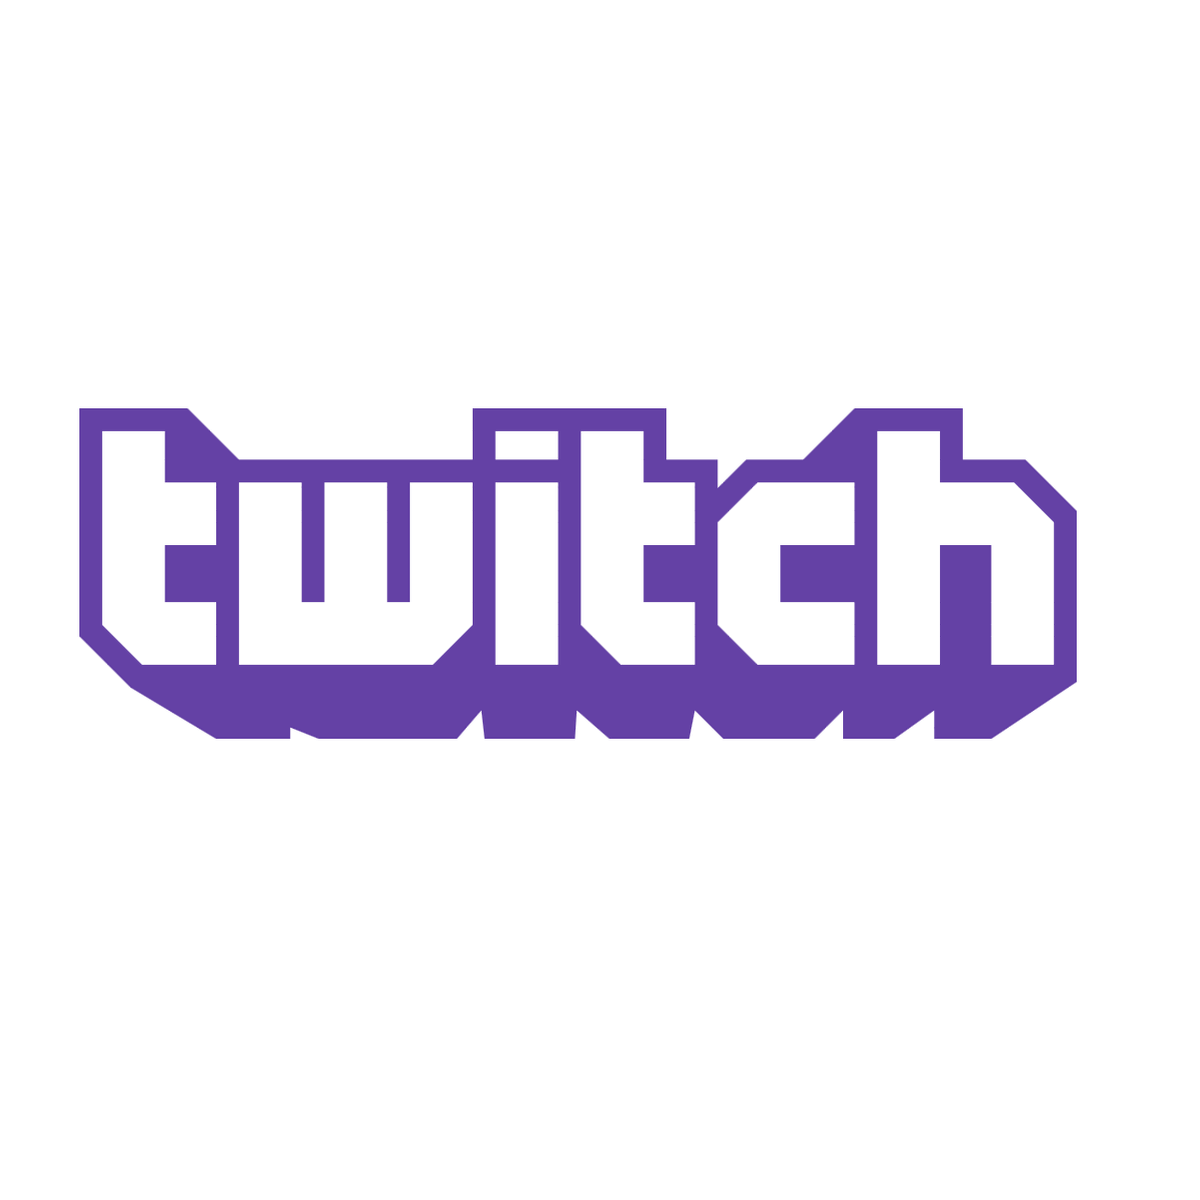 twitch could not verify